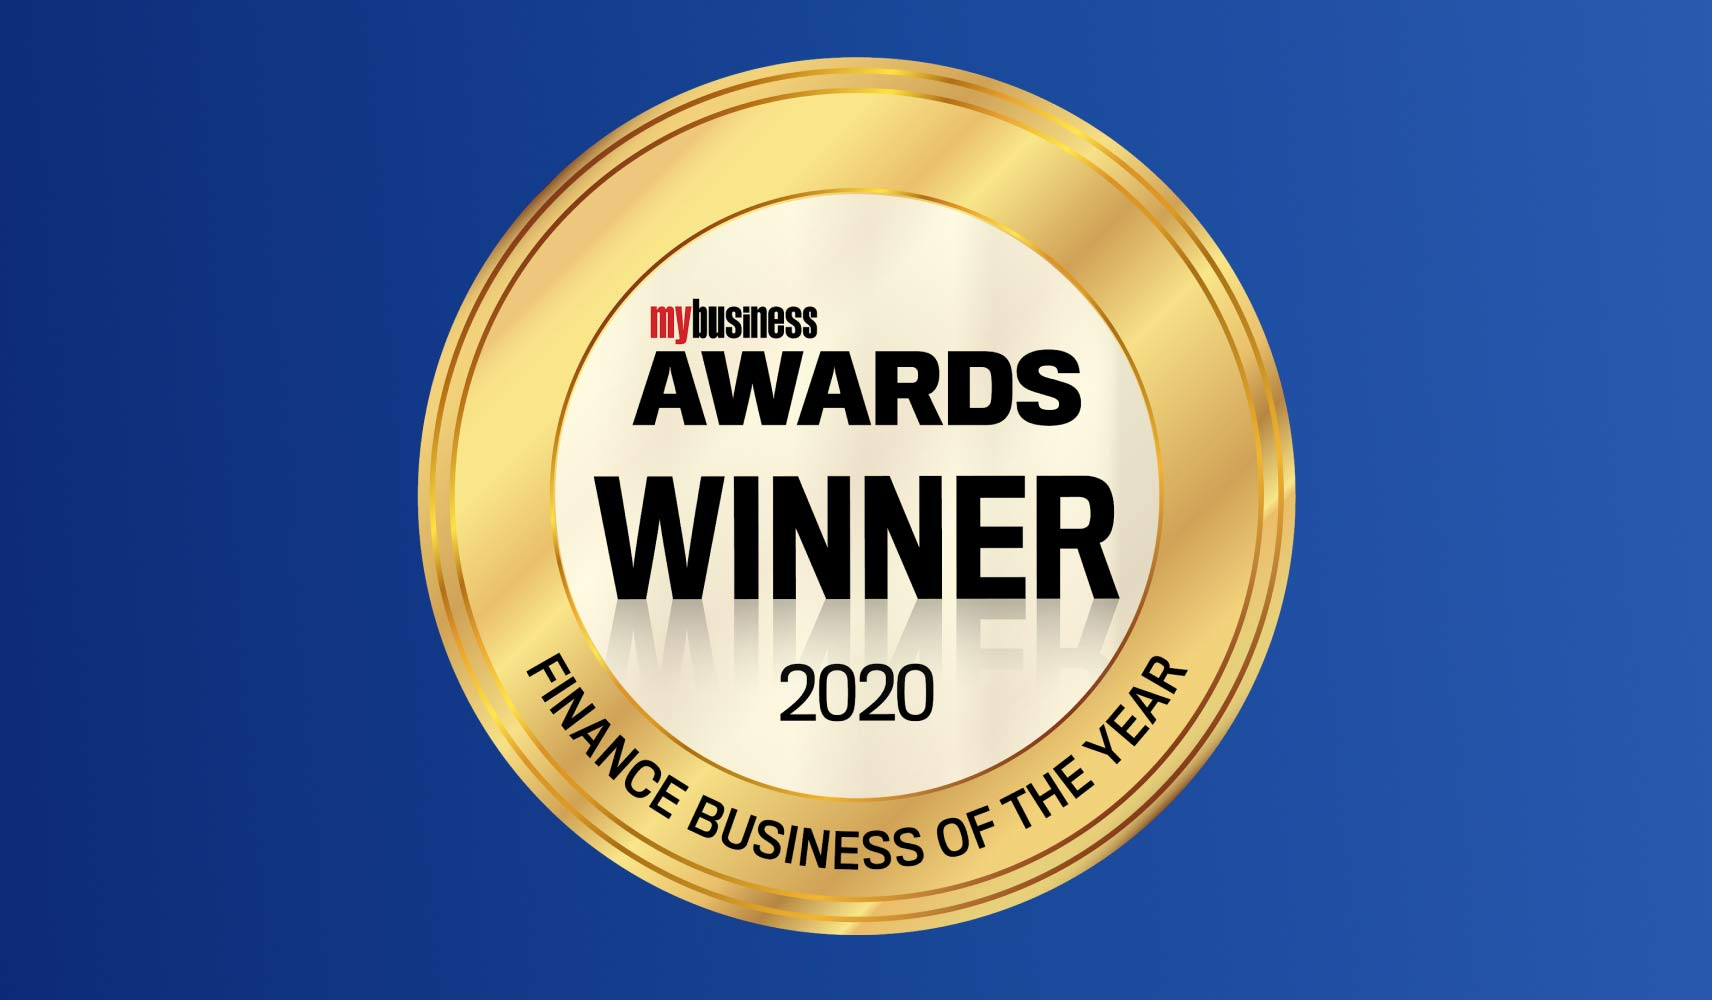 Rush identified as 'Finance Business of the Year' at the MyBusiness Awards 2020